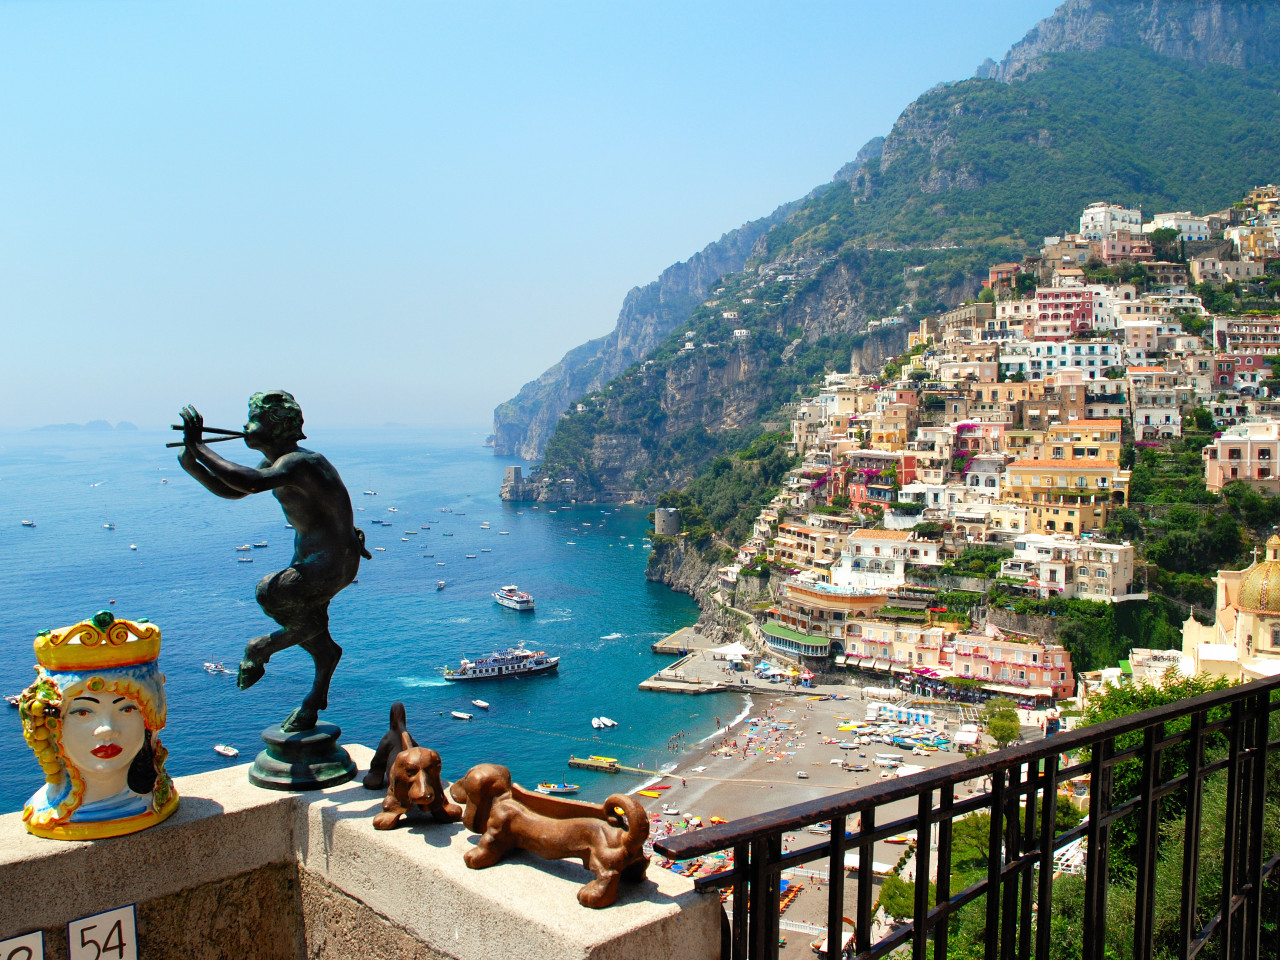 Guided Tour to Positano, Amalfi & Ravello - Sea and land experience